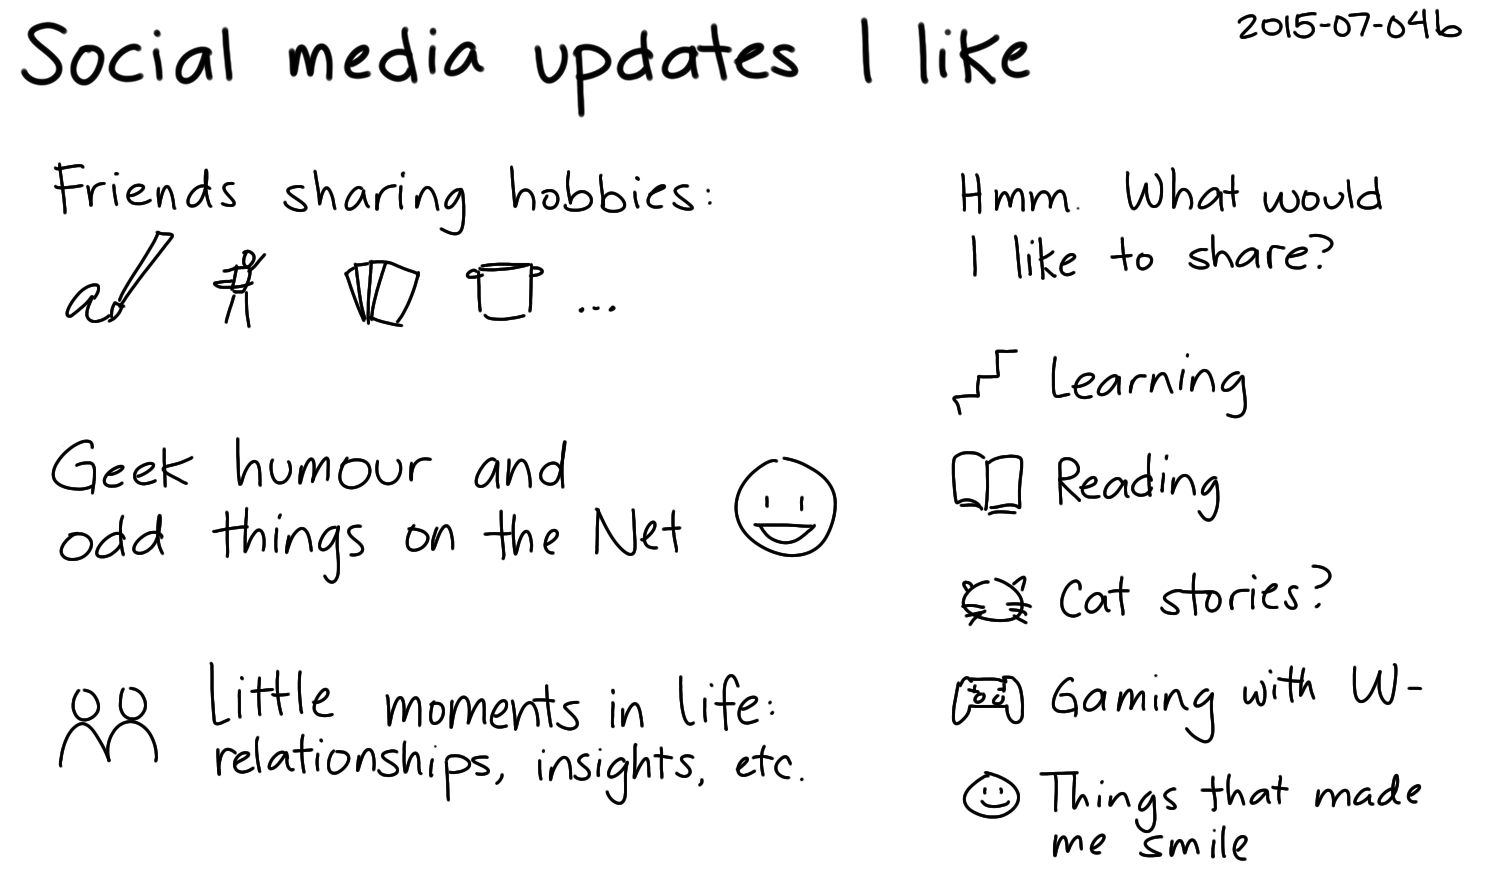 2015-07-04b Social media updates I like -- index card #connecting.png